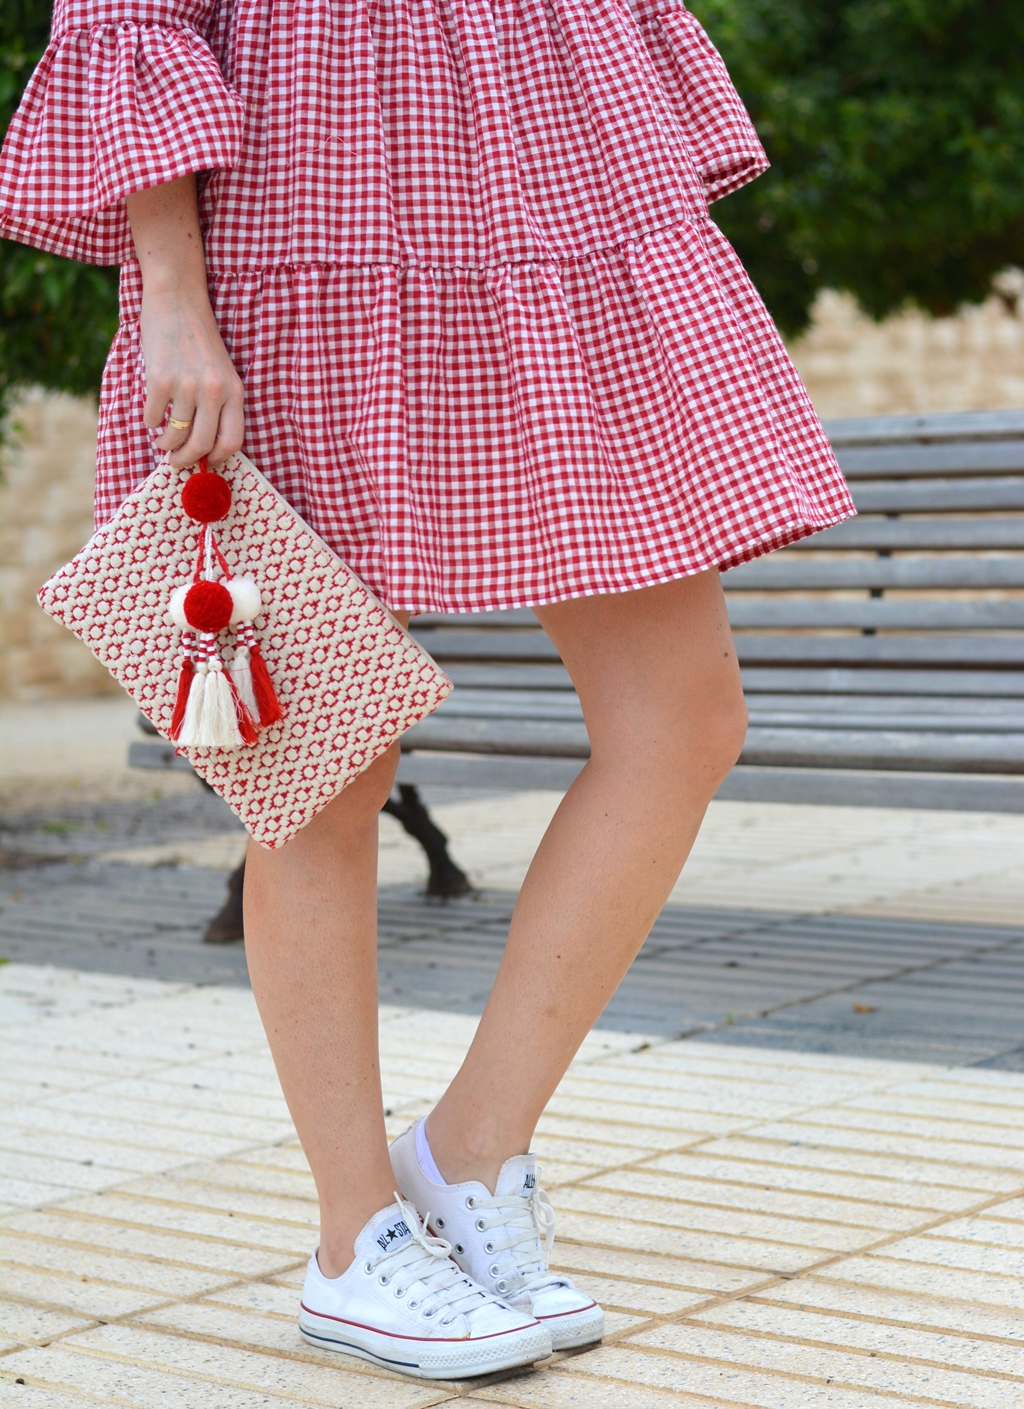 zara-gingham-mini-dress-clutch-maxmara